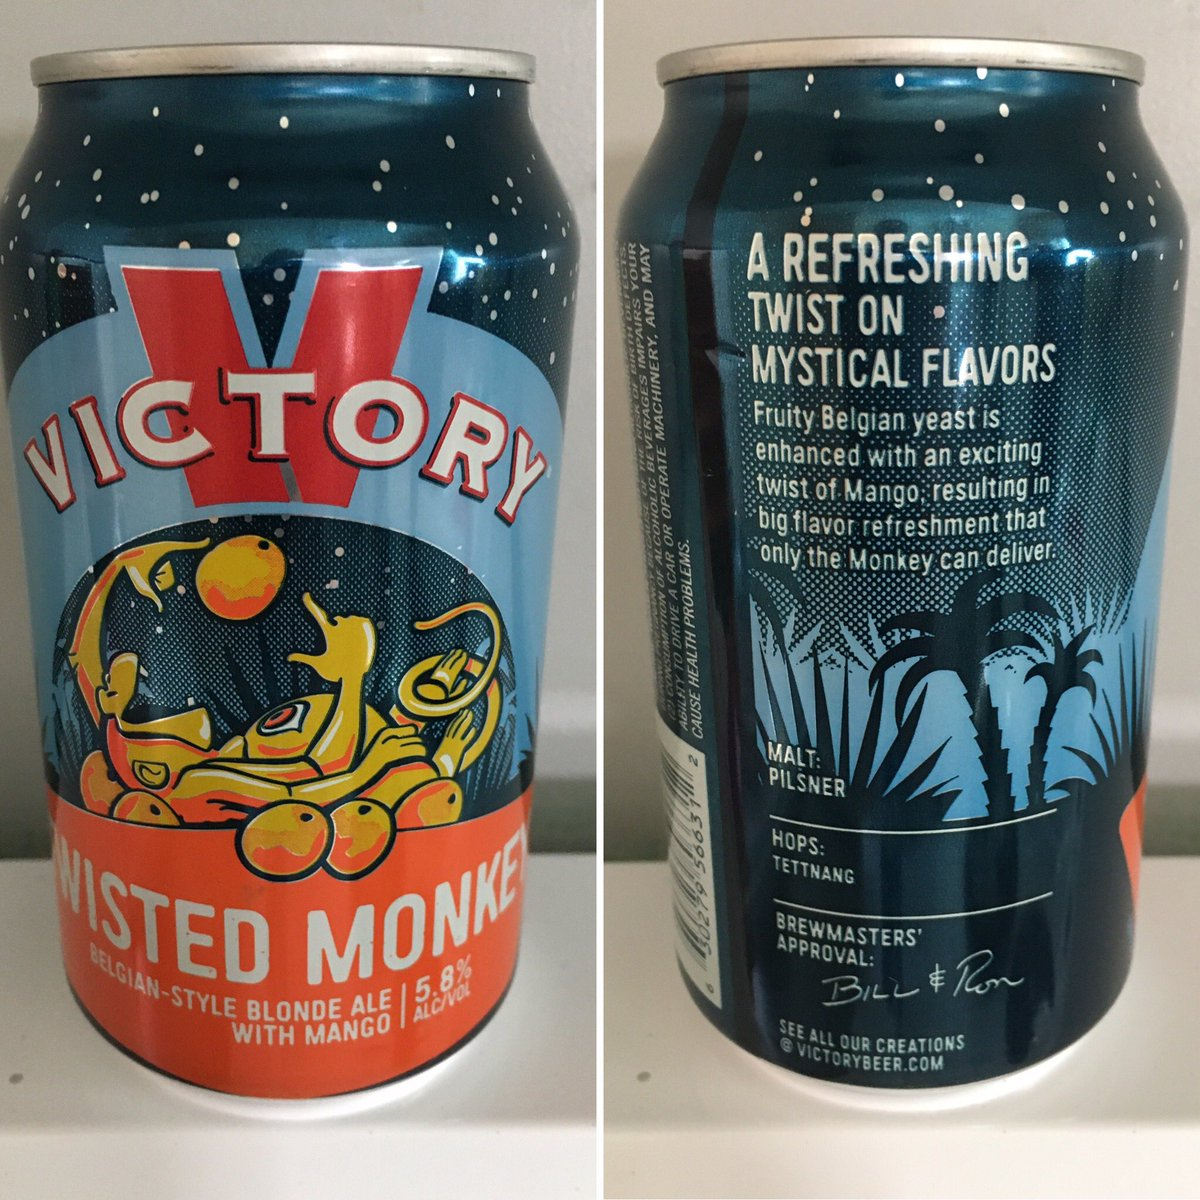 @VictoryBeer Twisted Monkey #canmuseum